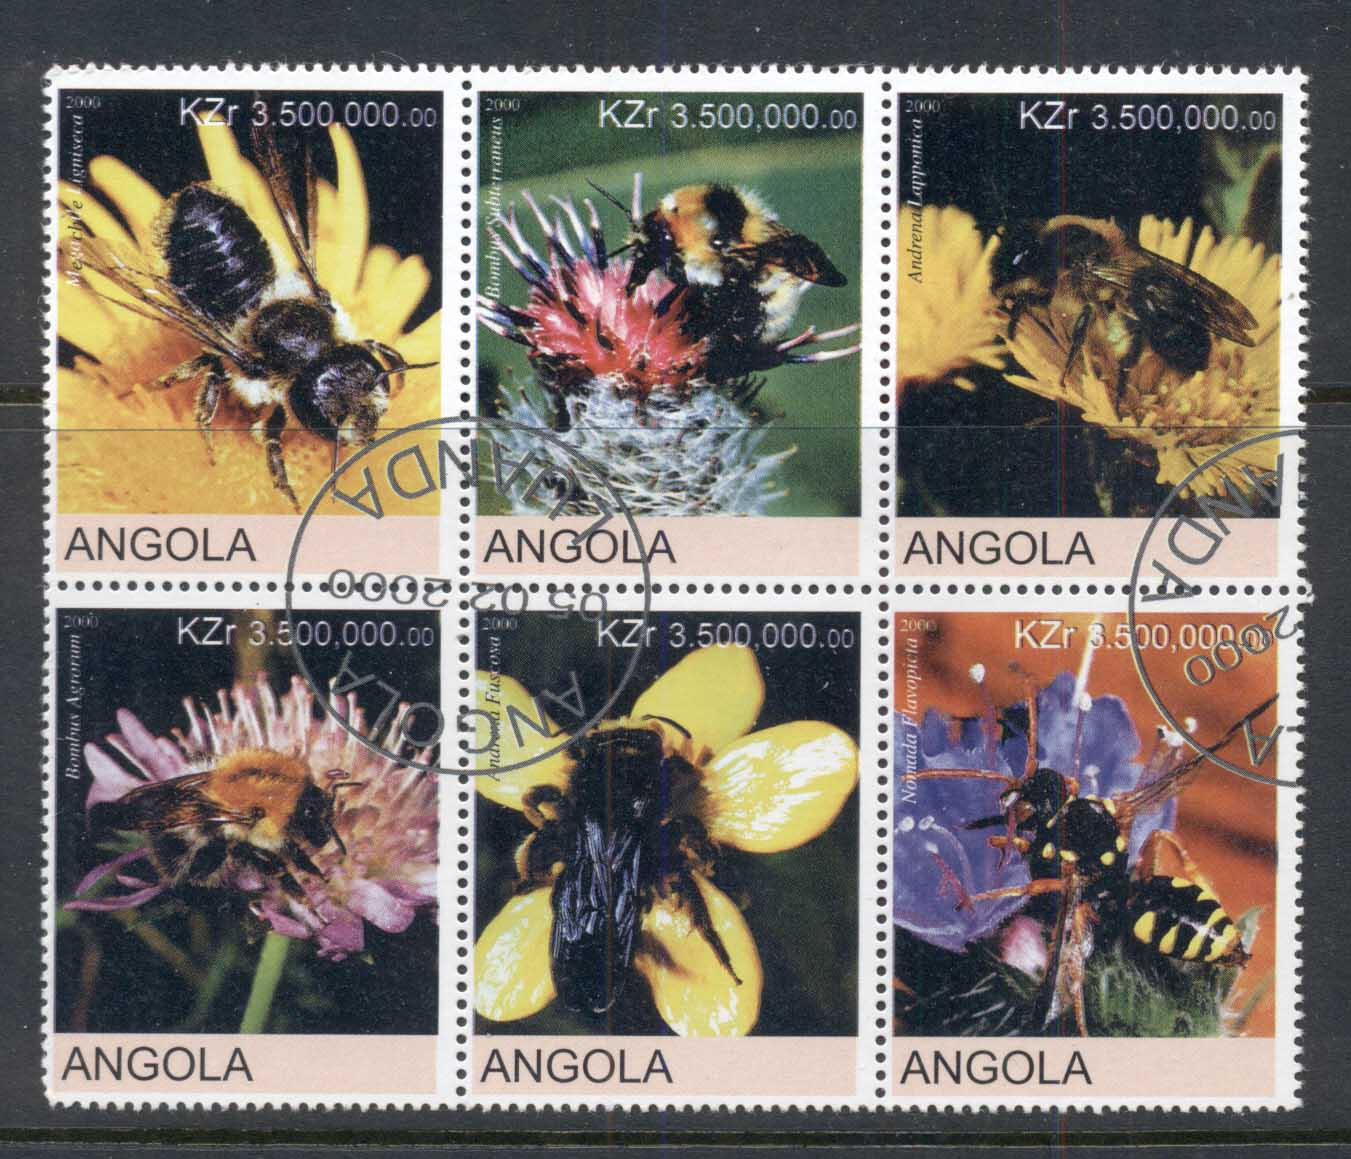 Angola 2000 Flowers, Bees blk6 (rebel Issue) CTO